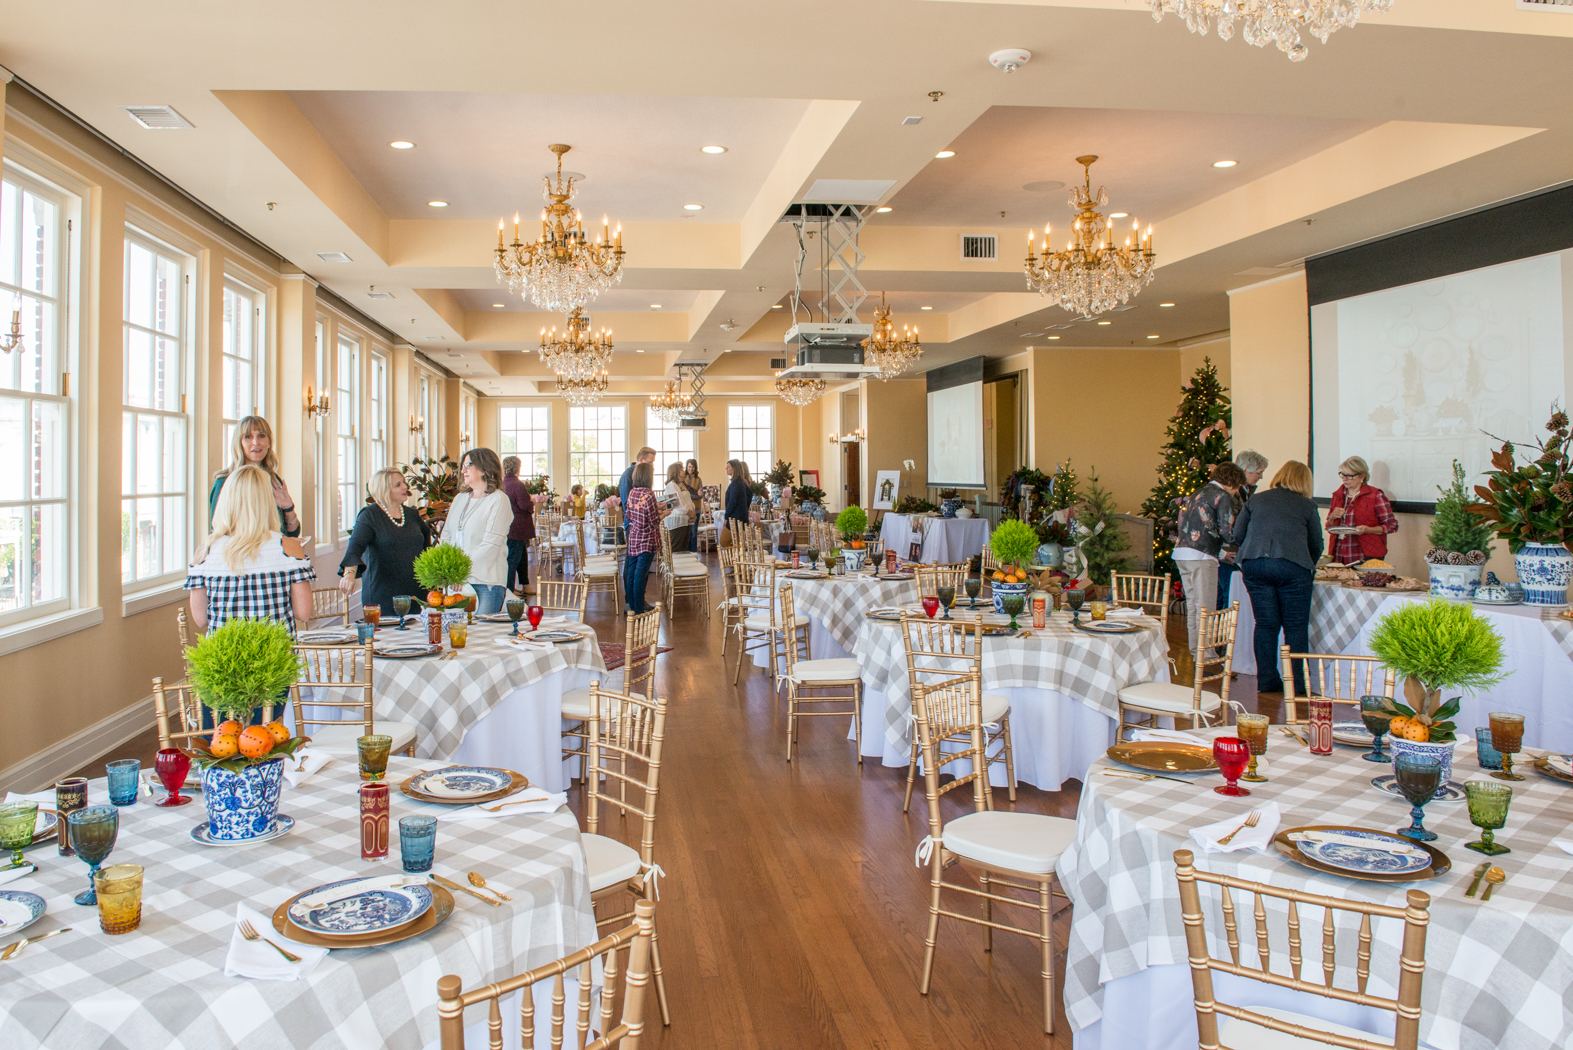 The light-filled Bullock Ballroom is prepared for a classroom event. White and cream checkered linens adorn each table, decorated with gold chargers, blue willow china, green and blue goblets and green topiary centerpieces.